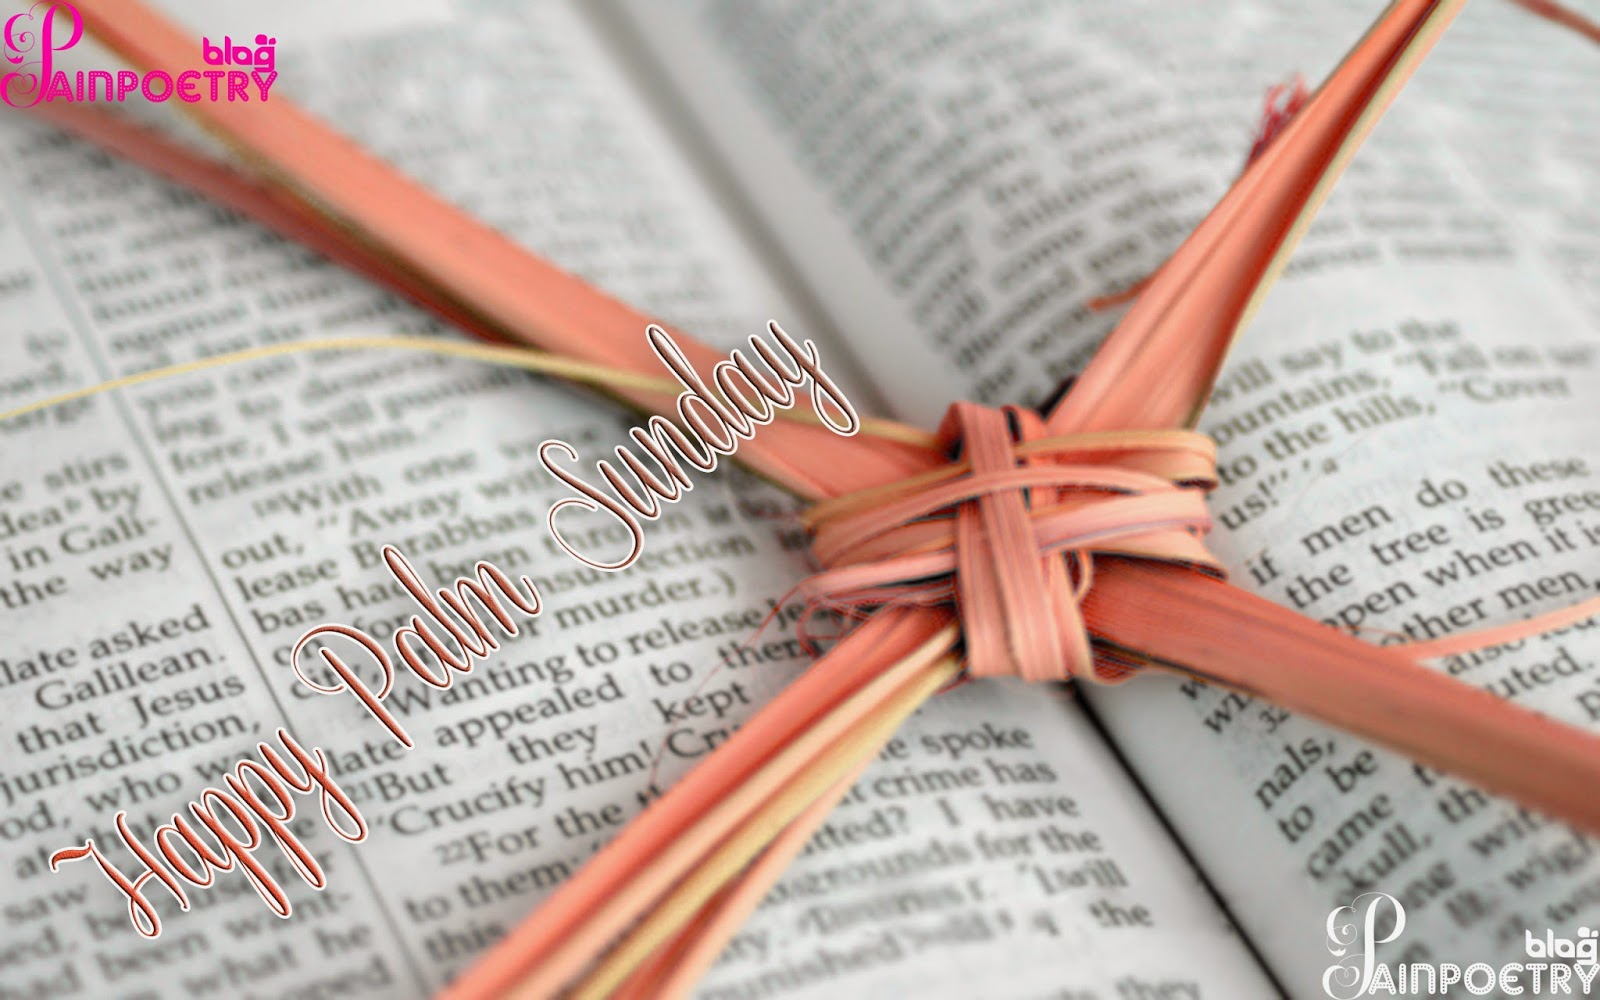 Palm-Sunday-Cross-Image-Put-On-Book-Photo-Wide